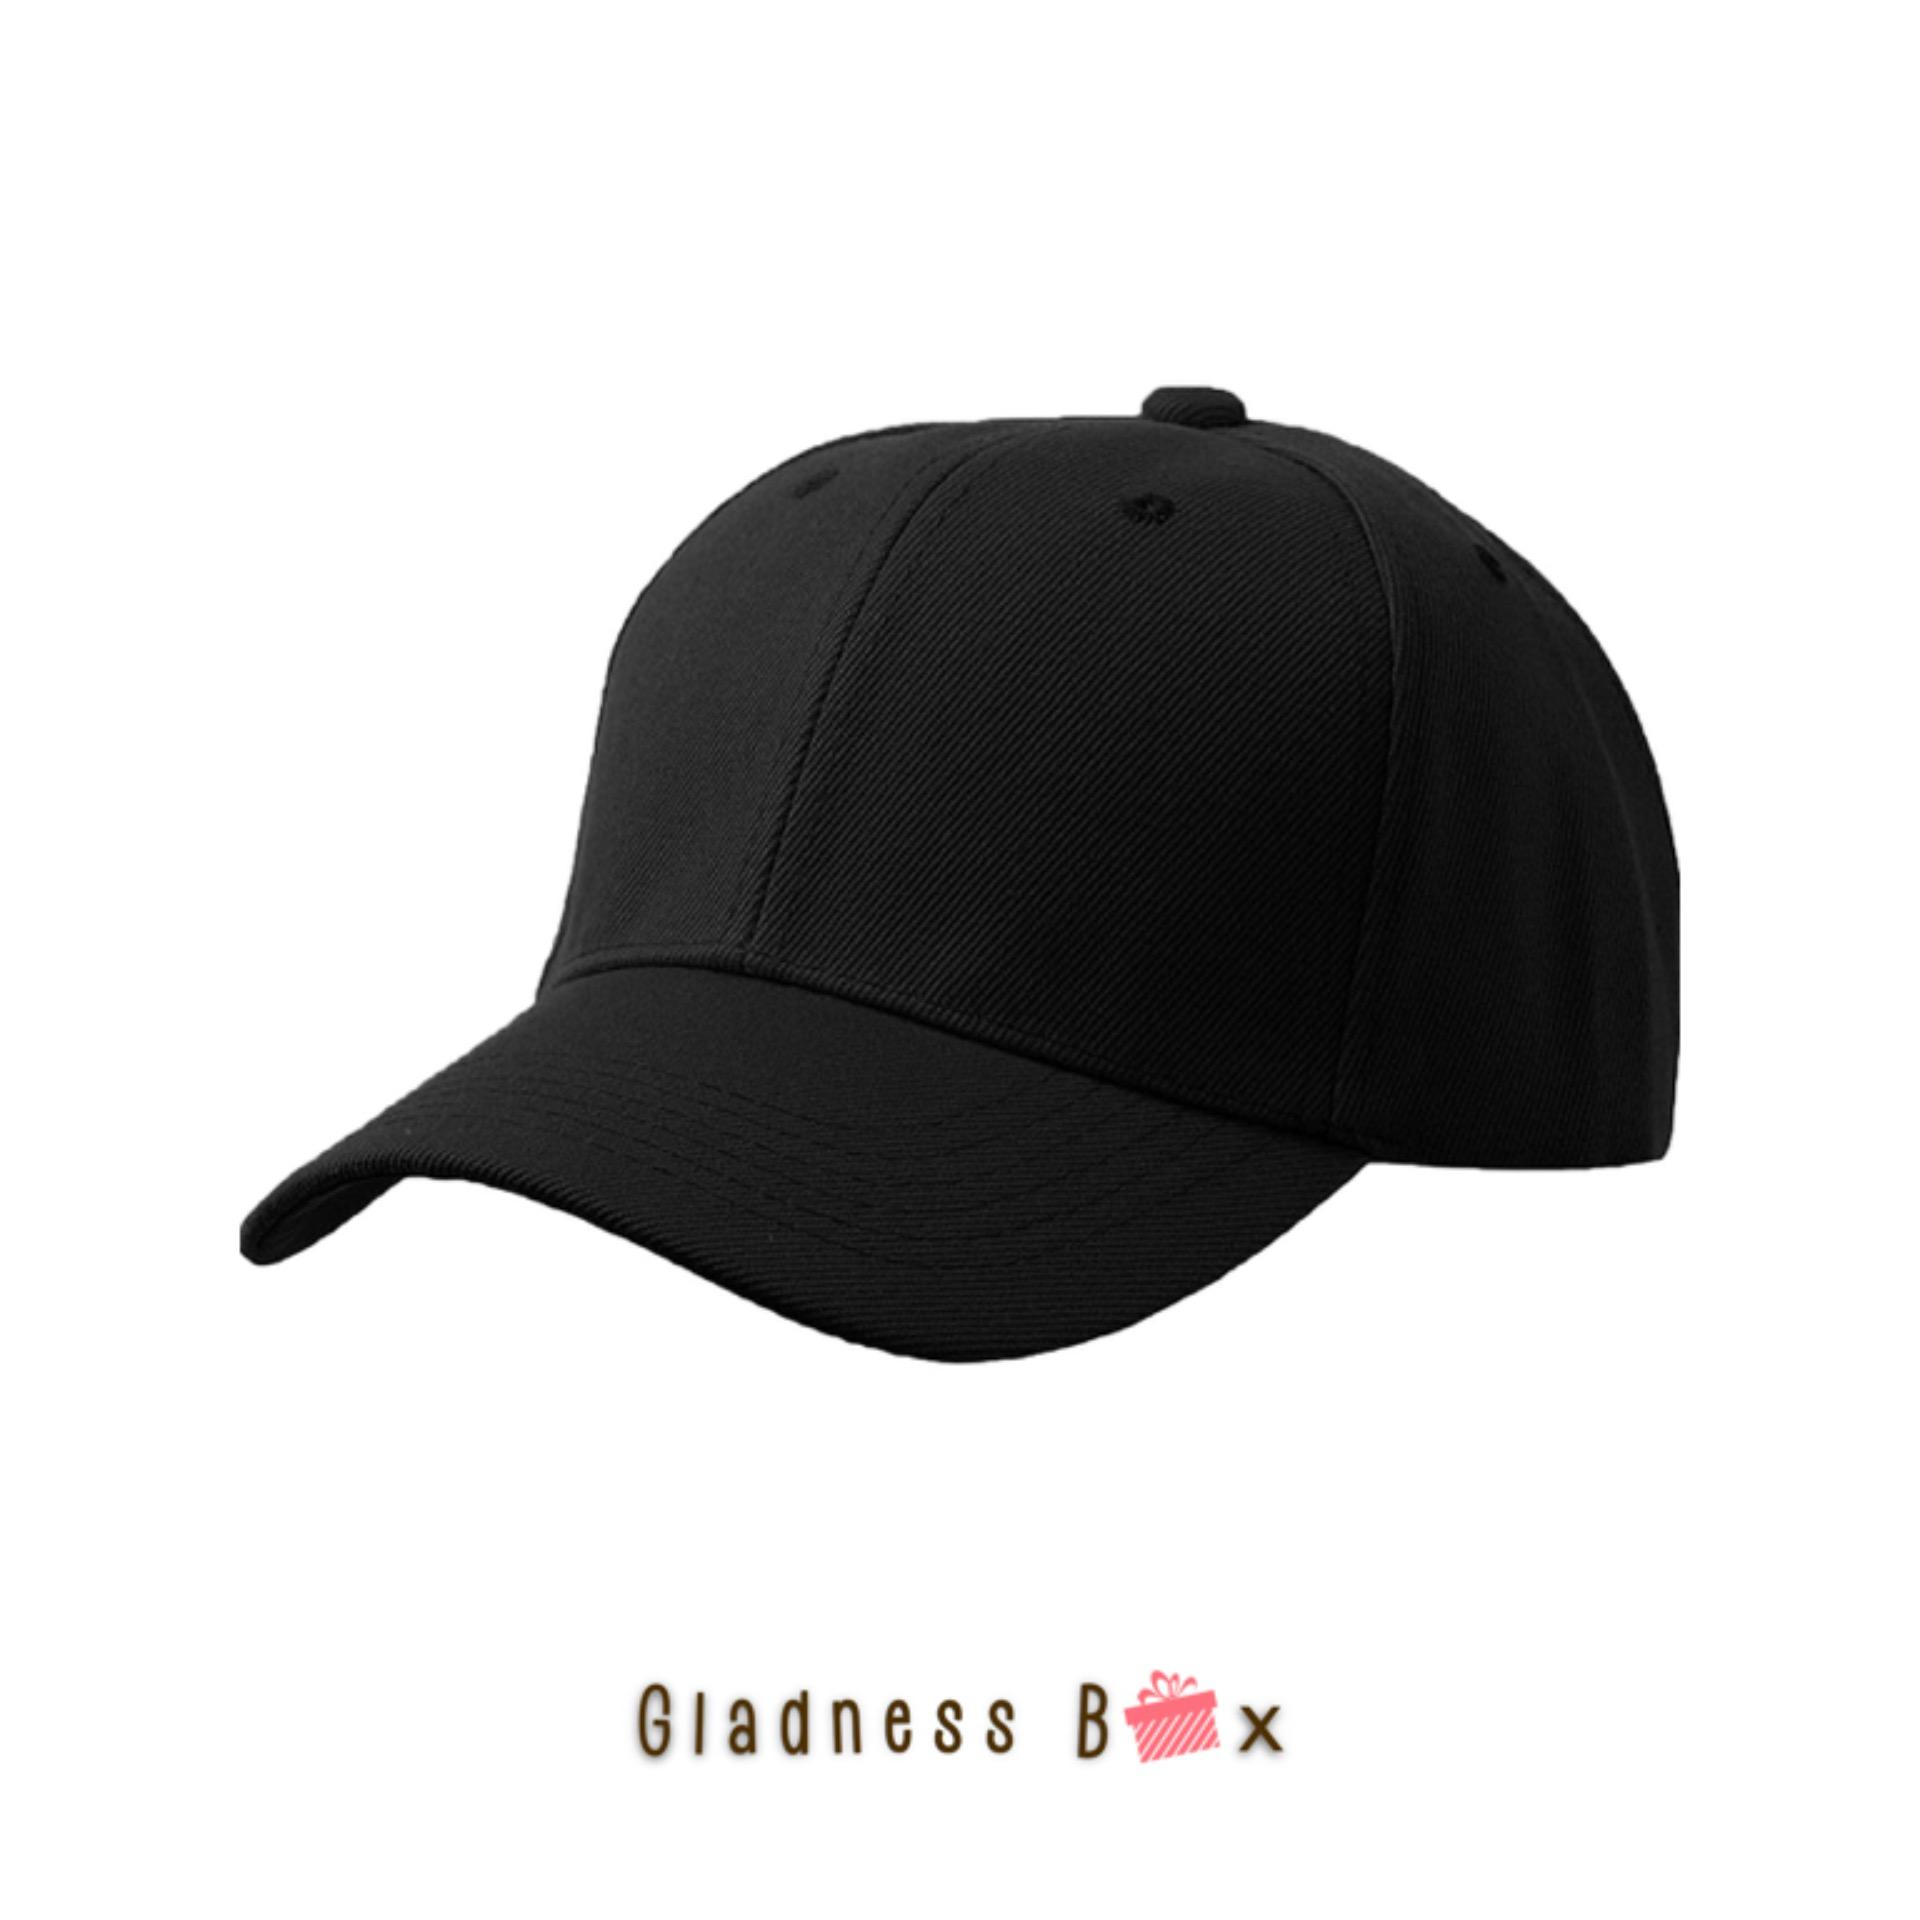 fd193f2d902 Gladness Box High Quality Plain Baseball Cap for Men Women Unisex